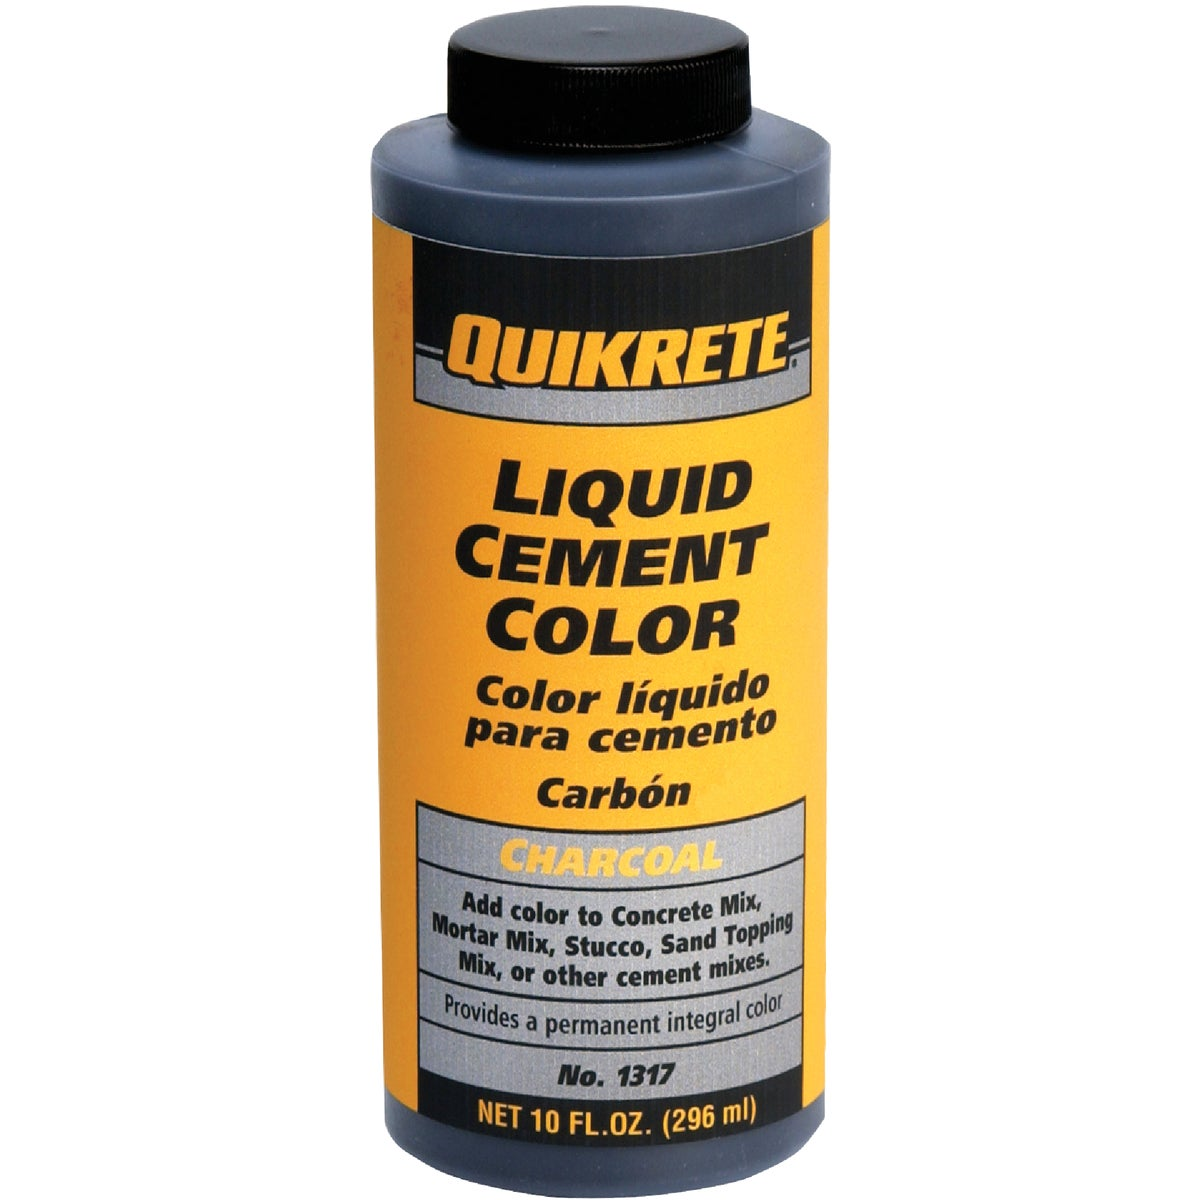 CHAR LIQUID CEMENT COLOR